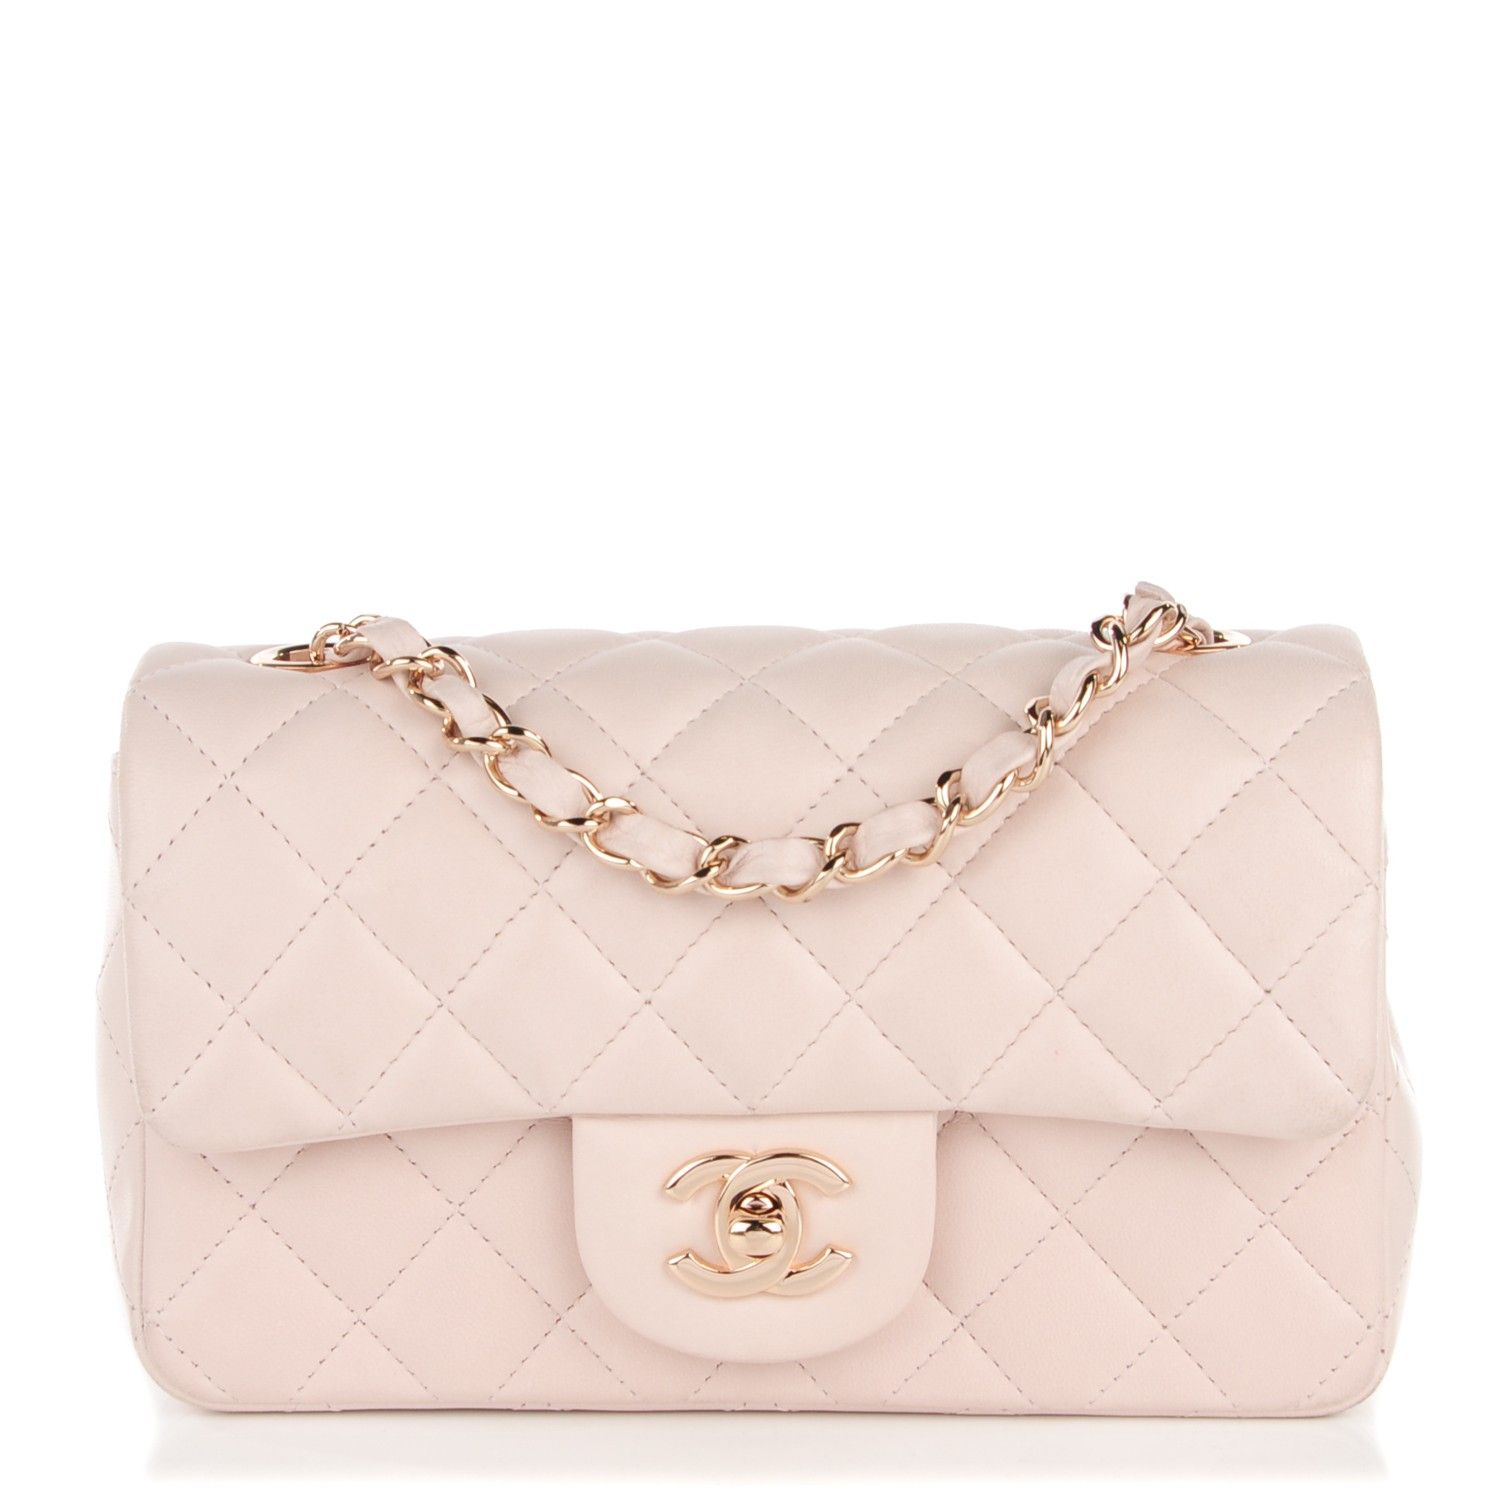 e85d0ab9c4cc15 This is an authentic CHANEL Lambskin Quilted Rectangular Mini Flap in Light  Pink. The chic little cross body classic mini flap is featured in soft  lambskin ...